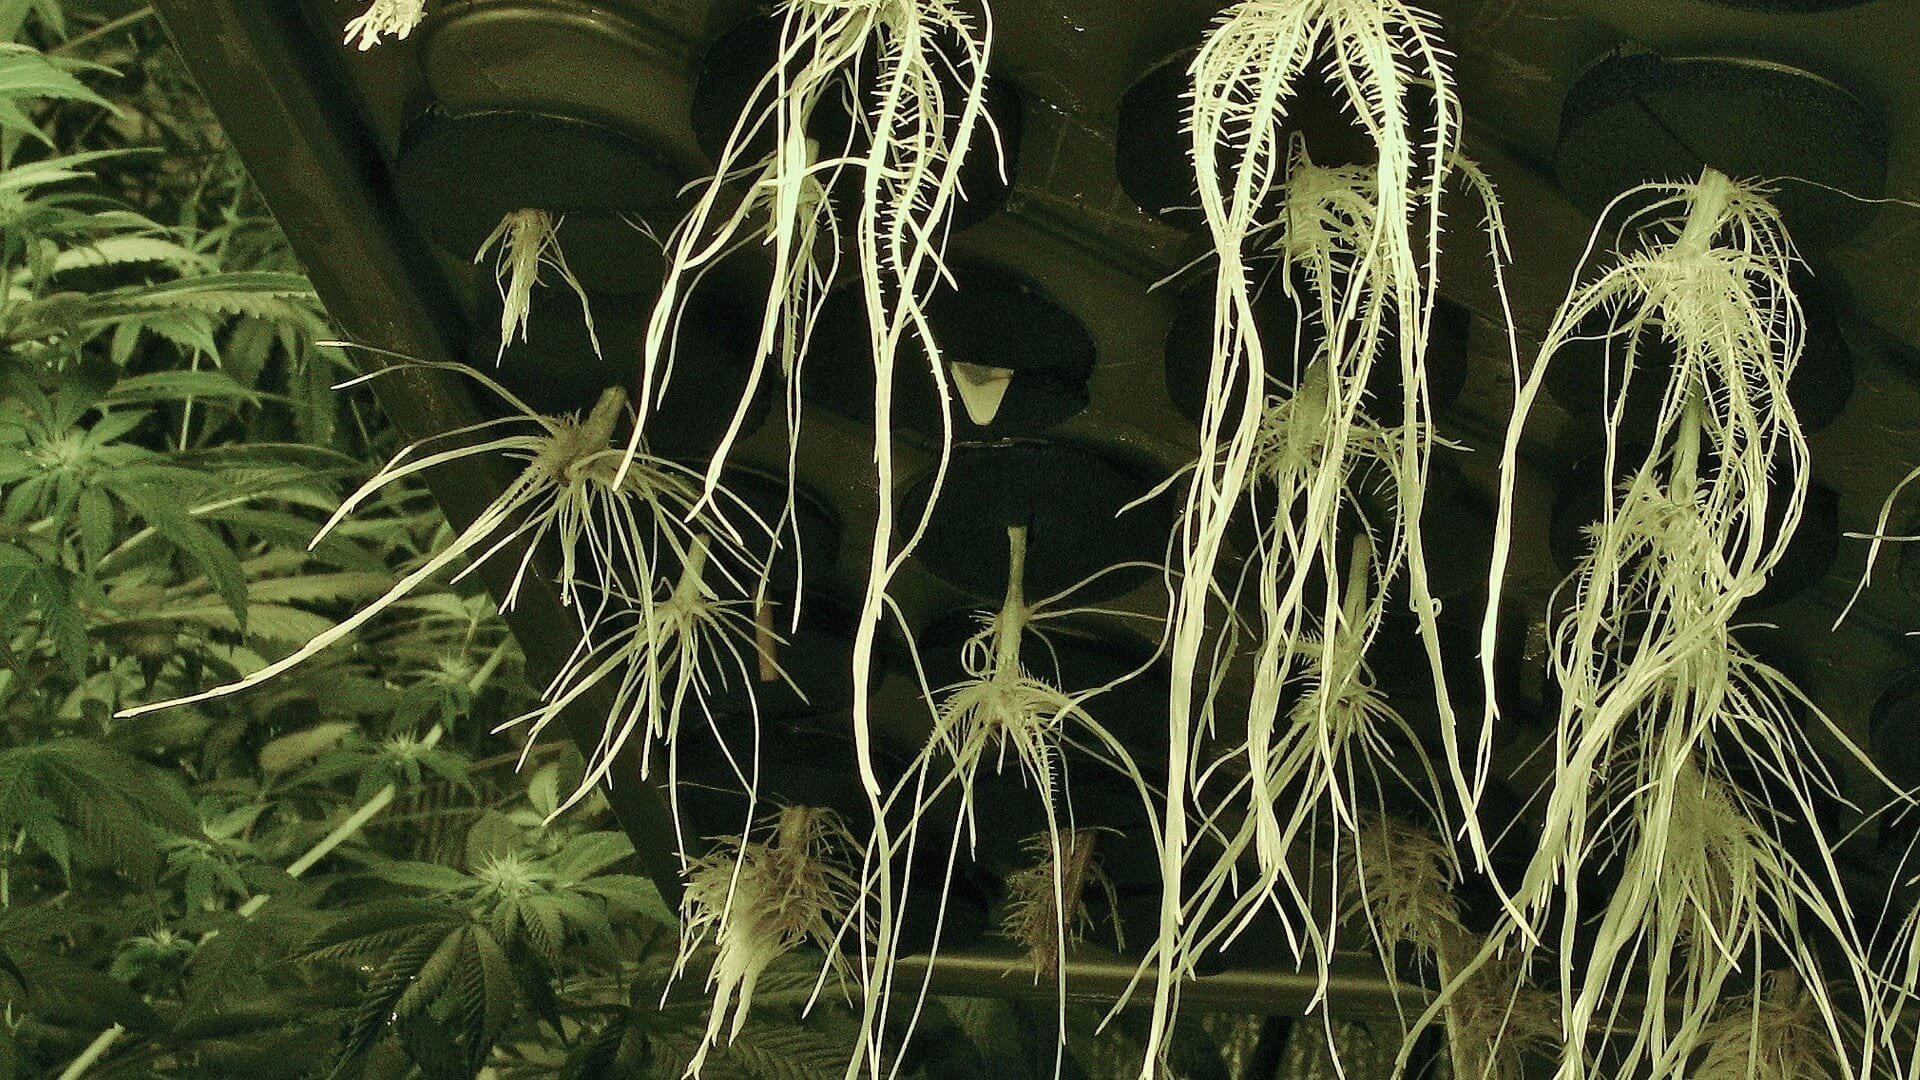 Compound found in cannabis roots has anti-inflammatory effects - study - weedroots